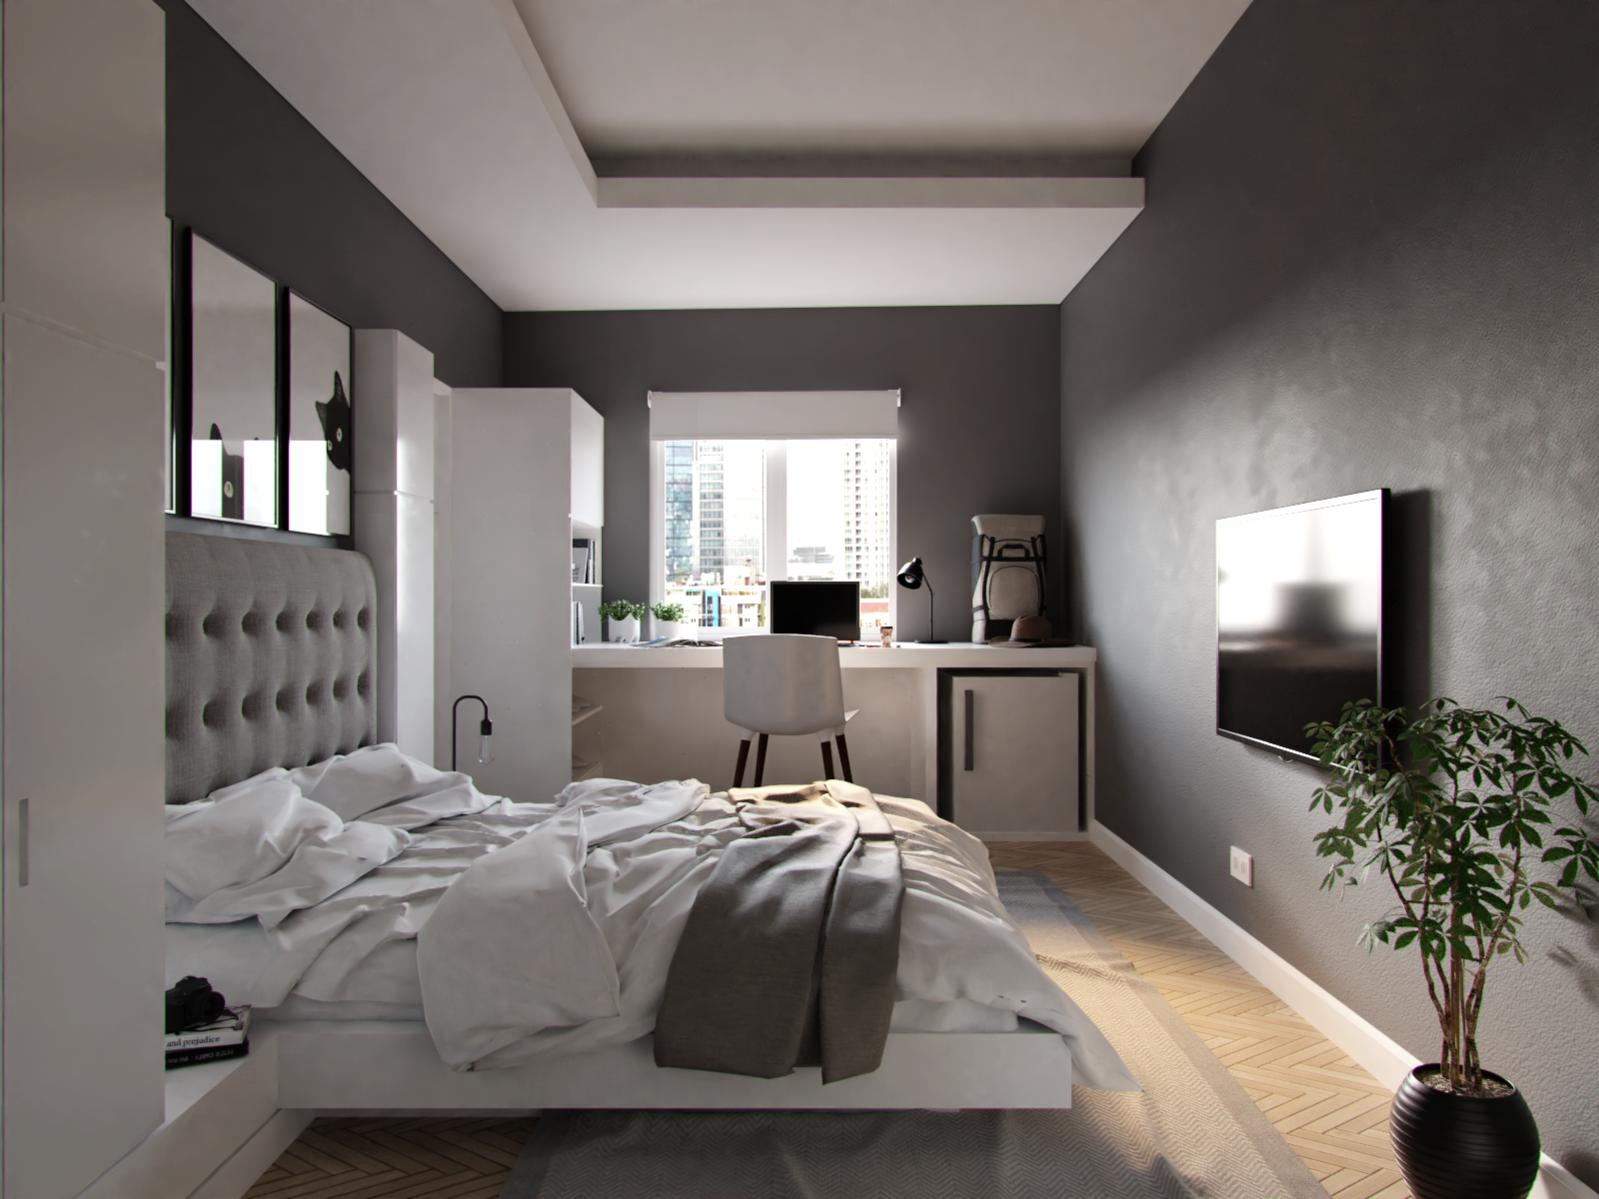 White-Grey Bedroom - Forum Gallery - Blender Artists Community